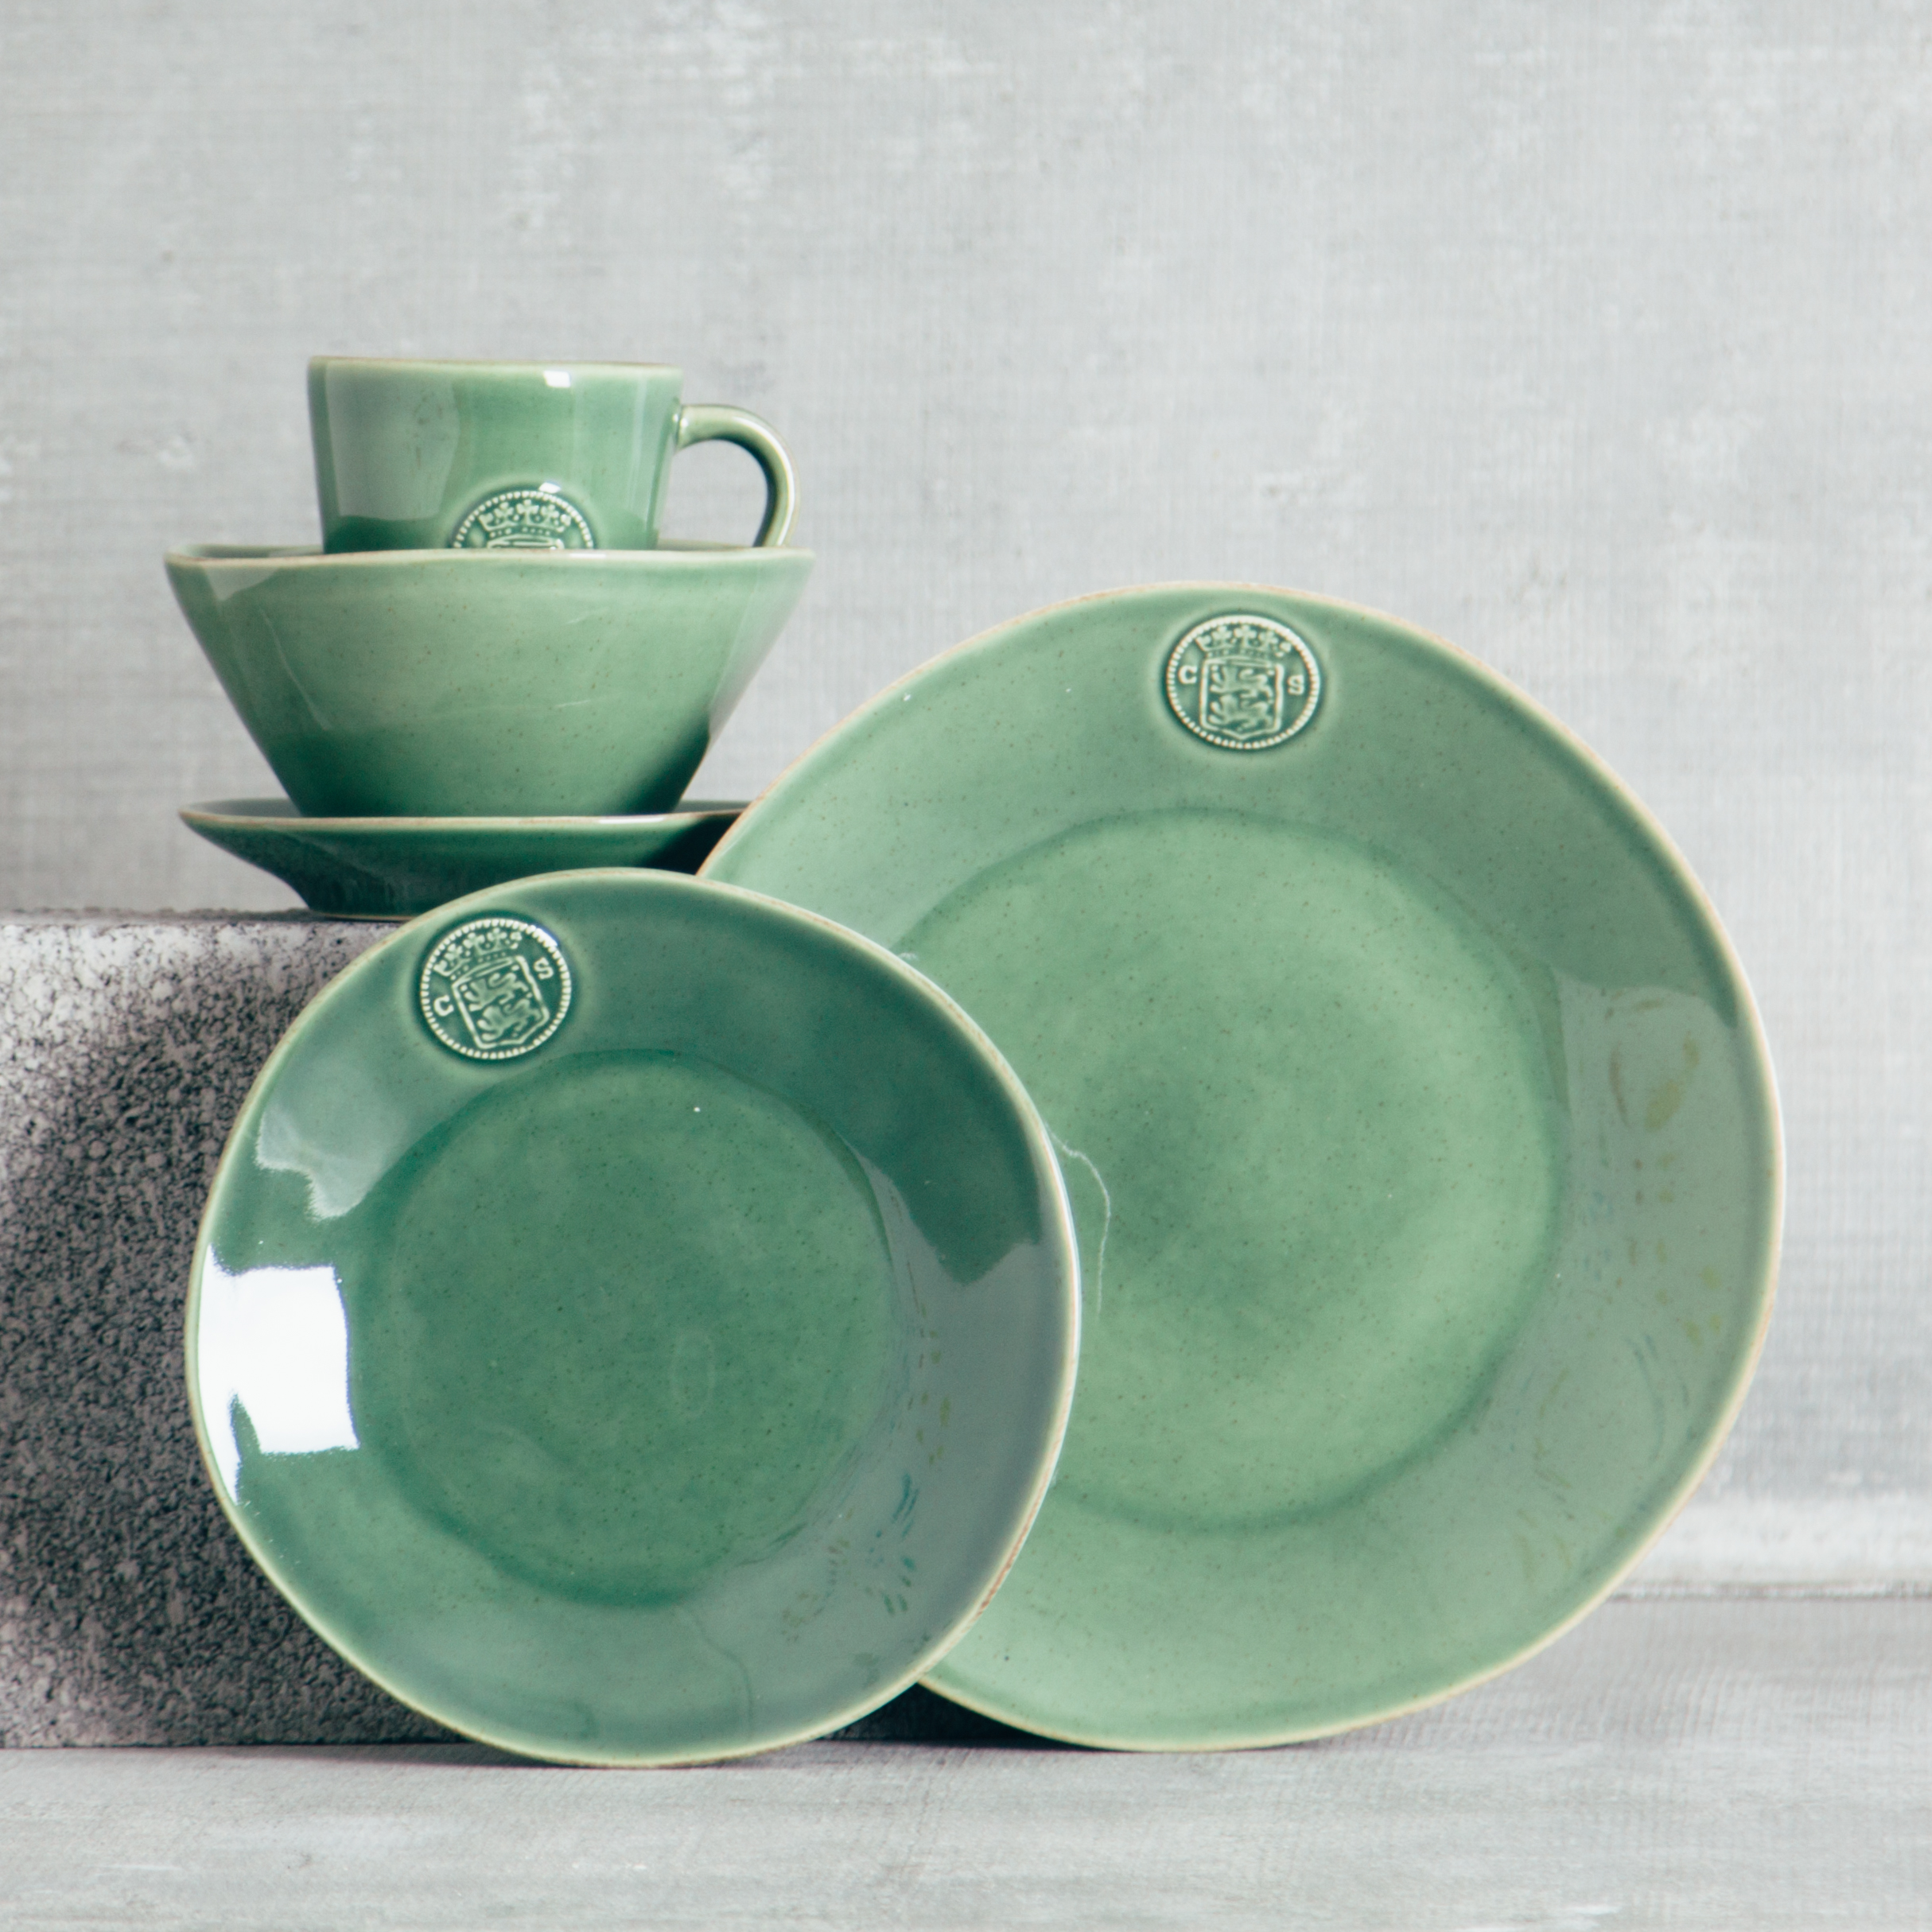 Forum Green Dinnerware Sets- DISCONTINUED LIMITED STOCK